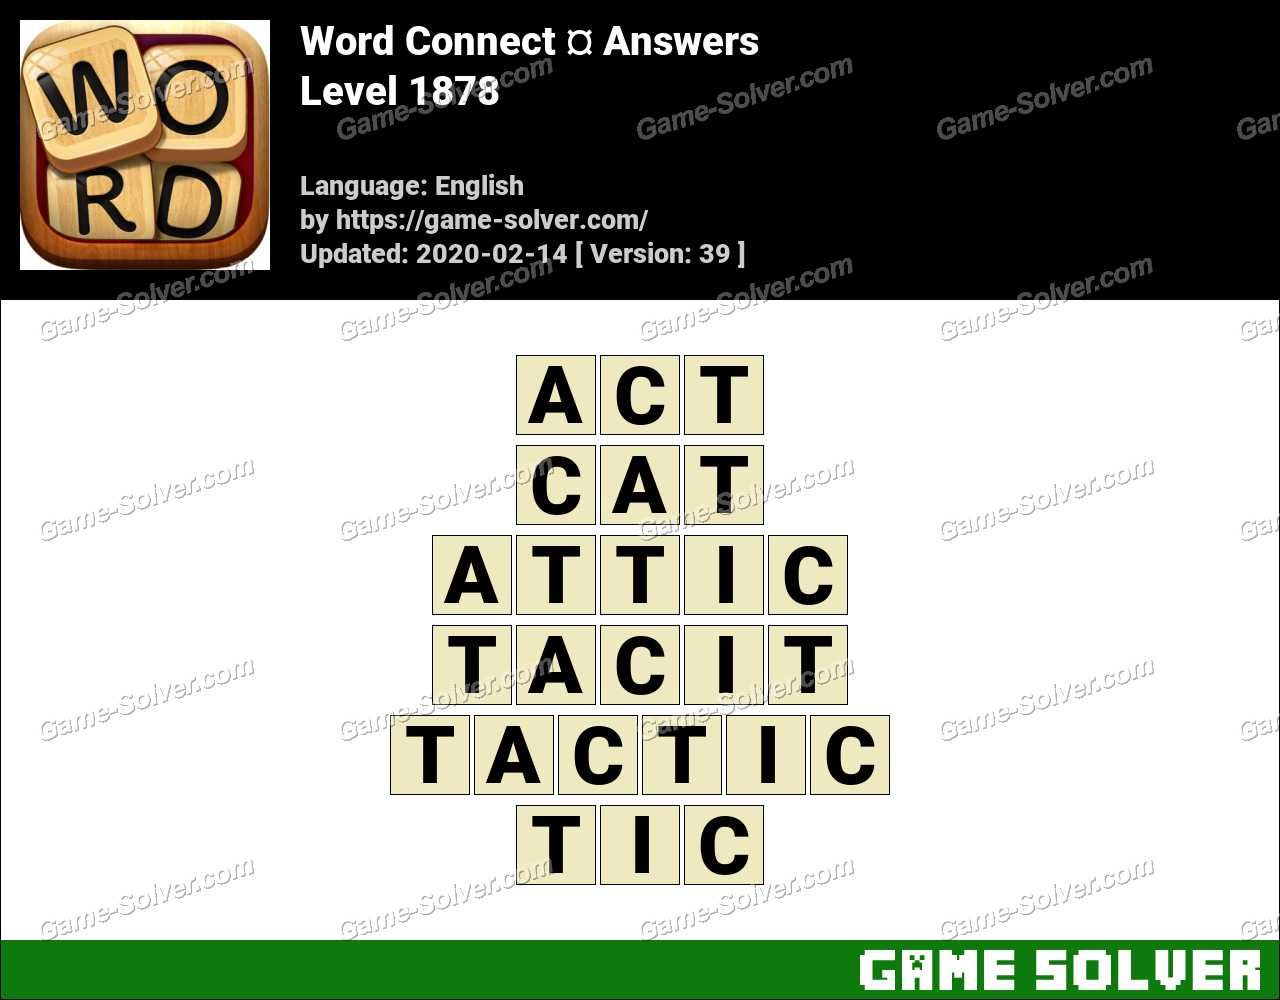 Word Connect Level 1878 Answers